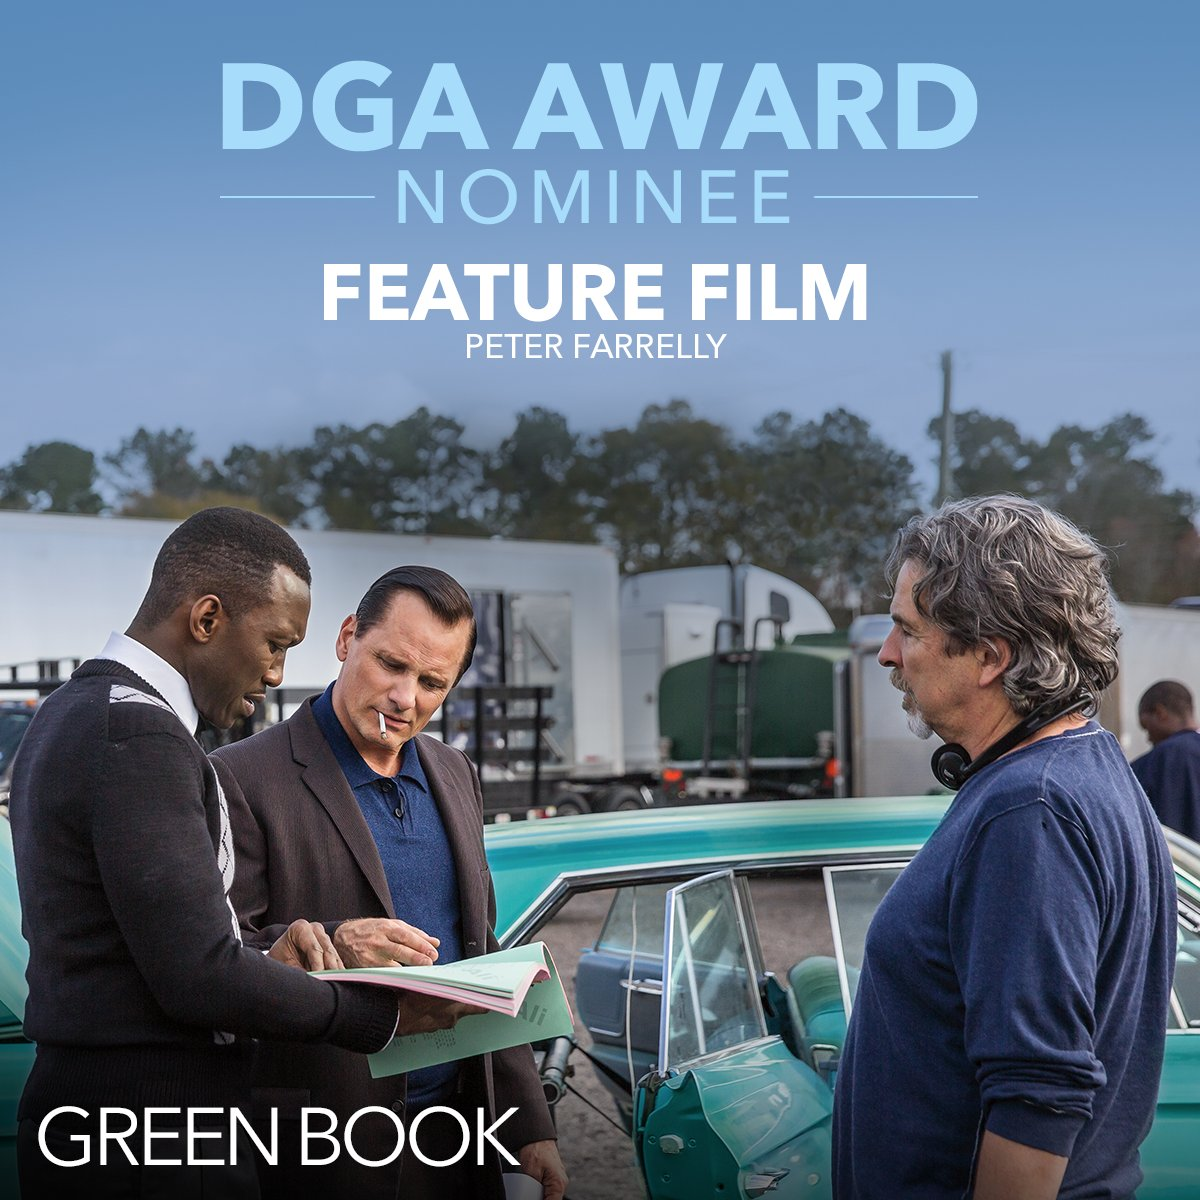 RT @greenbookmovie: Congratulations to Peter Farrelly on his #DGAAwards nomination. #GreenBookMovie https://t.co/I2Zj9EuvGi